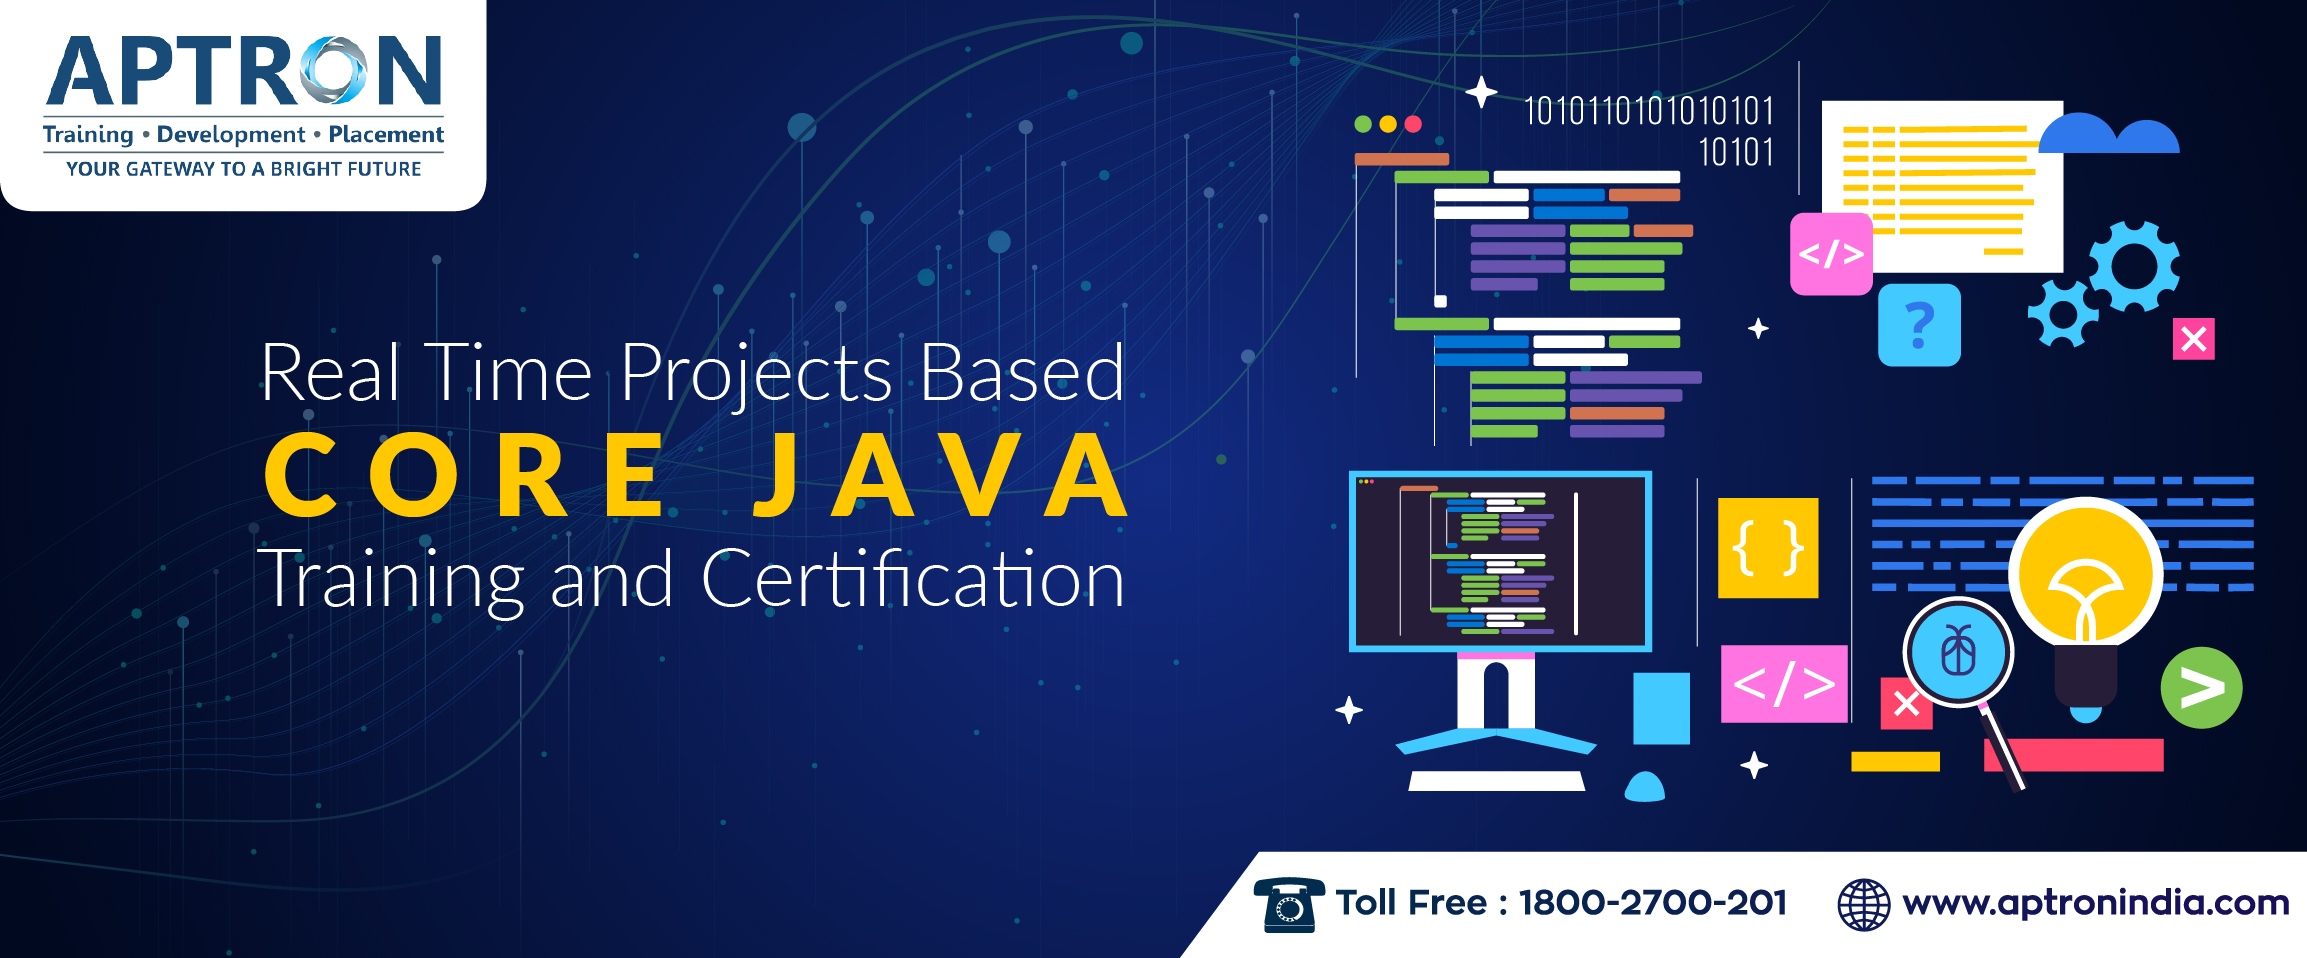 Core Java Training and Certification